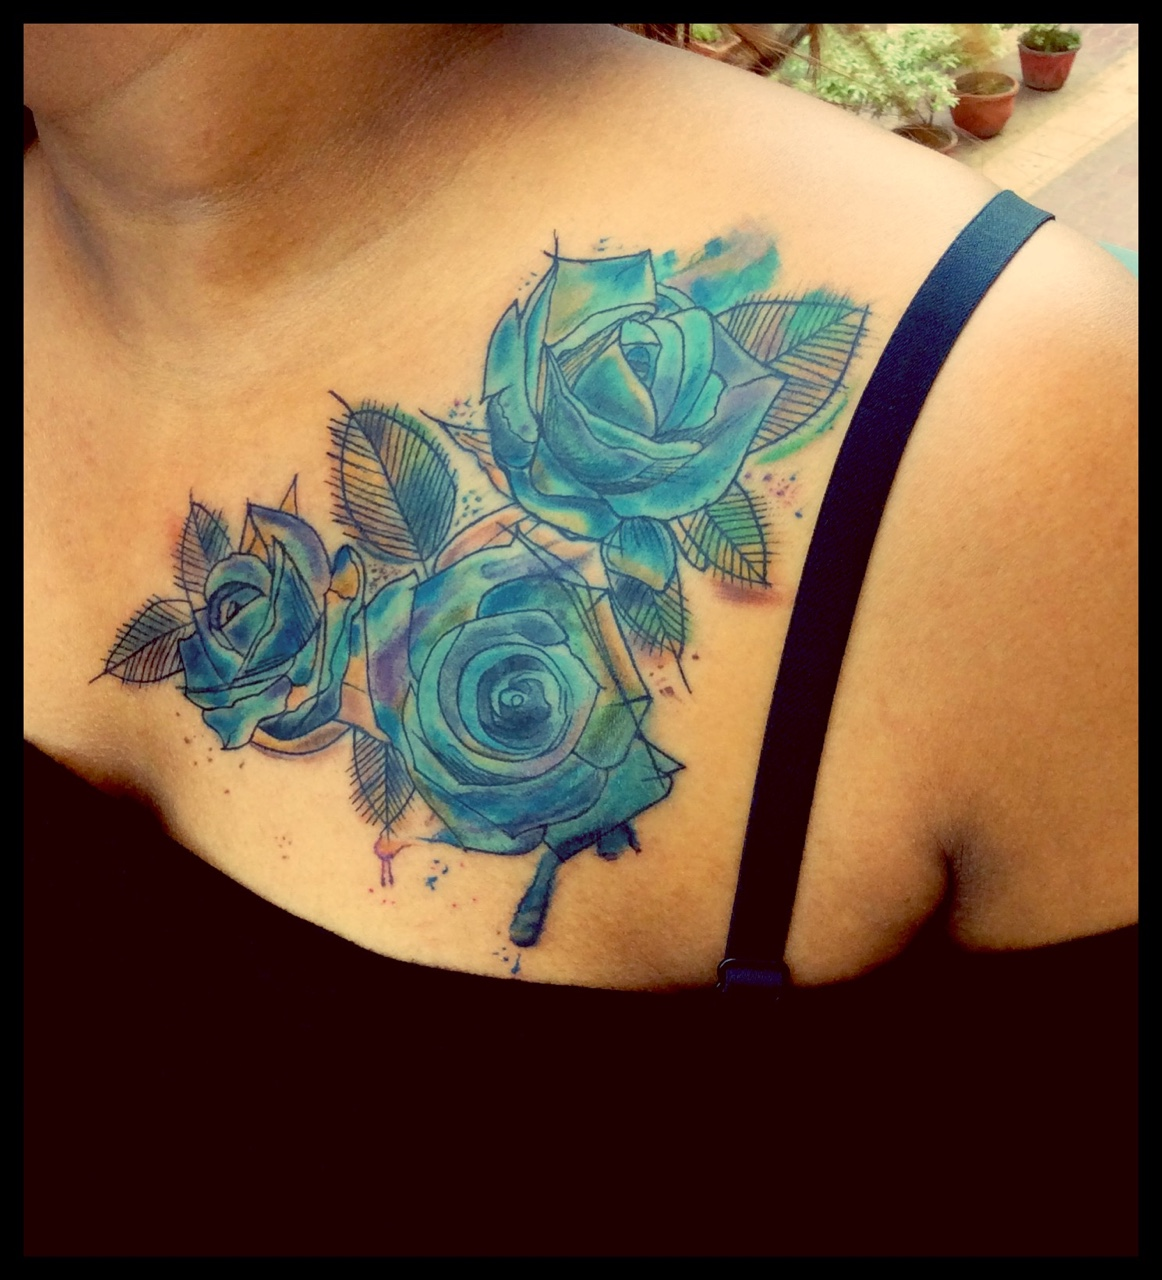 Tattoo Artists in Gurgaon Tattoosnewdelhi com